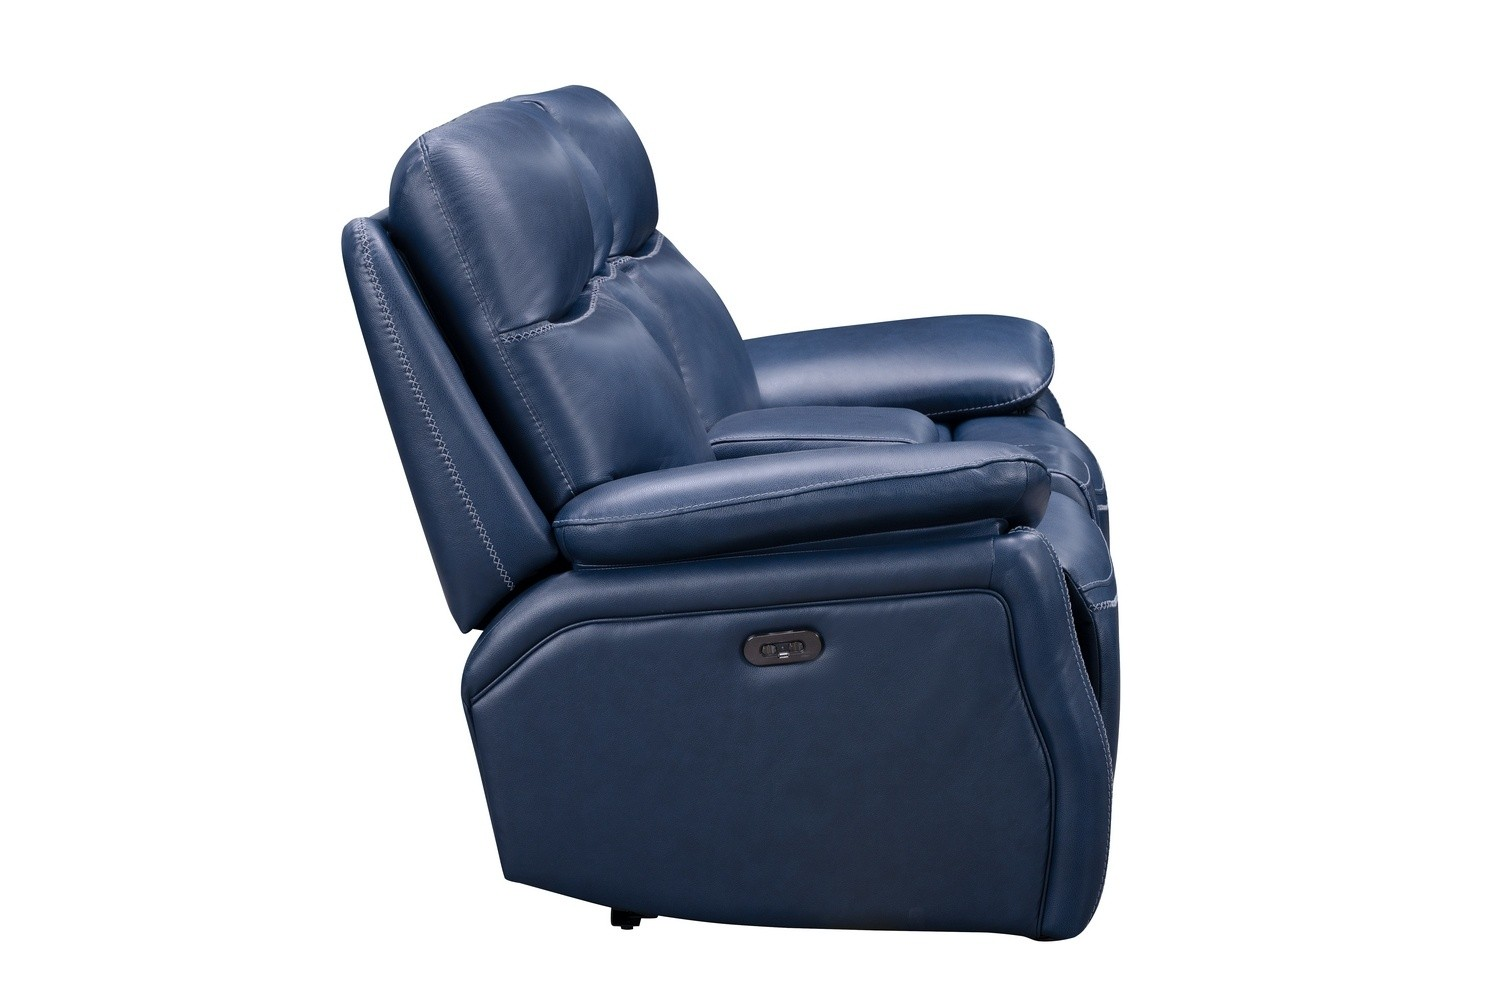 Barcalounger Micah Console Loveseat with Power Recline and Power Head Rests - Marco Navy Blue/Leather Match